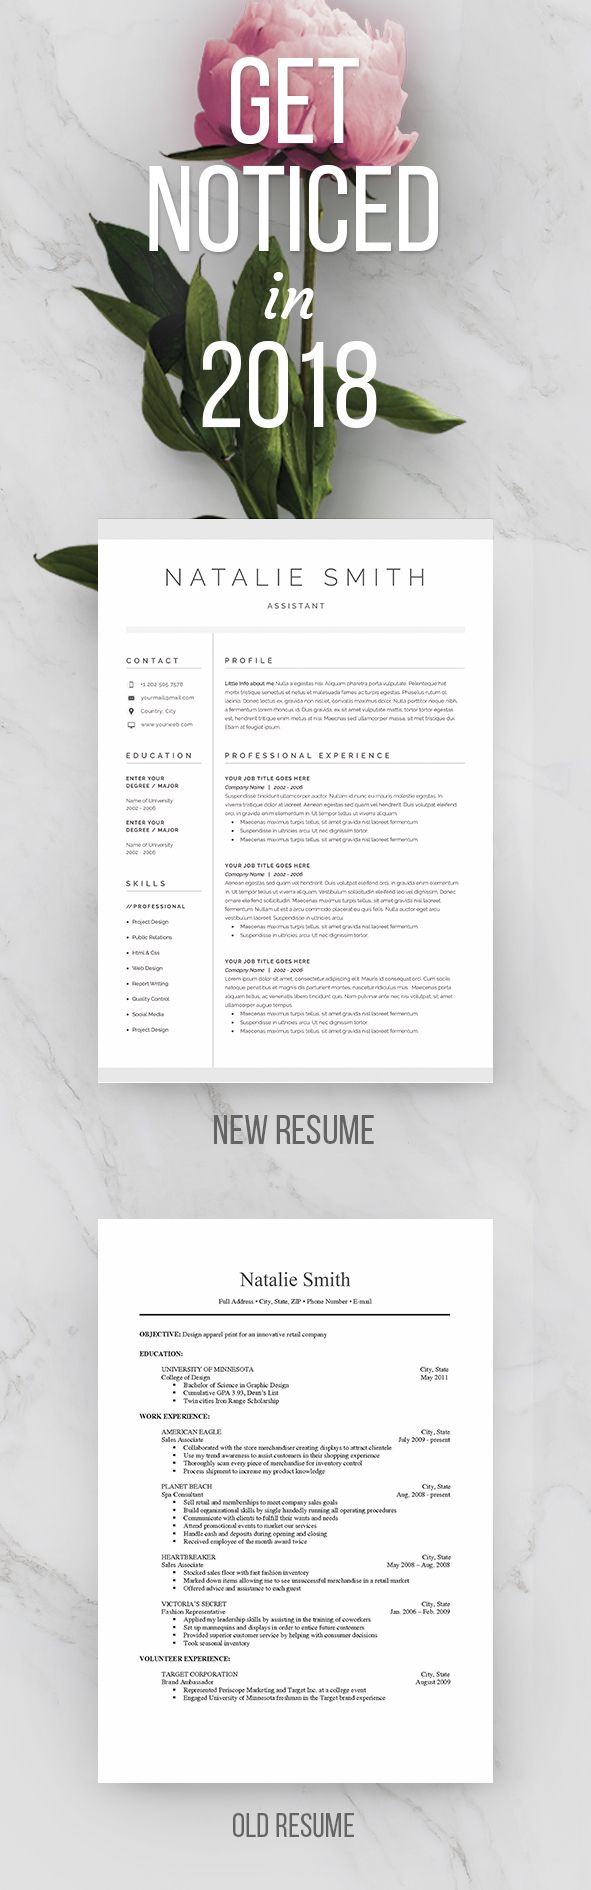 Resume Cover Letter Template 2018 Get Noticed In 2018 Land Your Dream Job  * Group Board Graphic